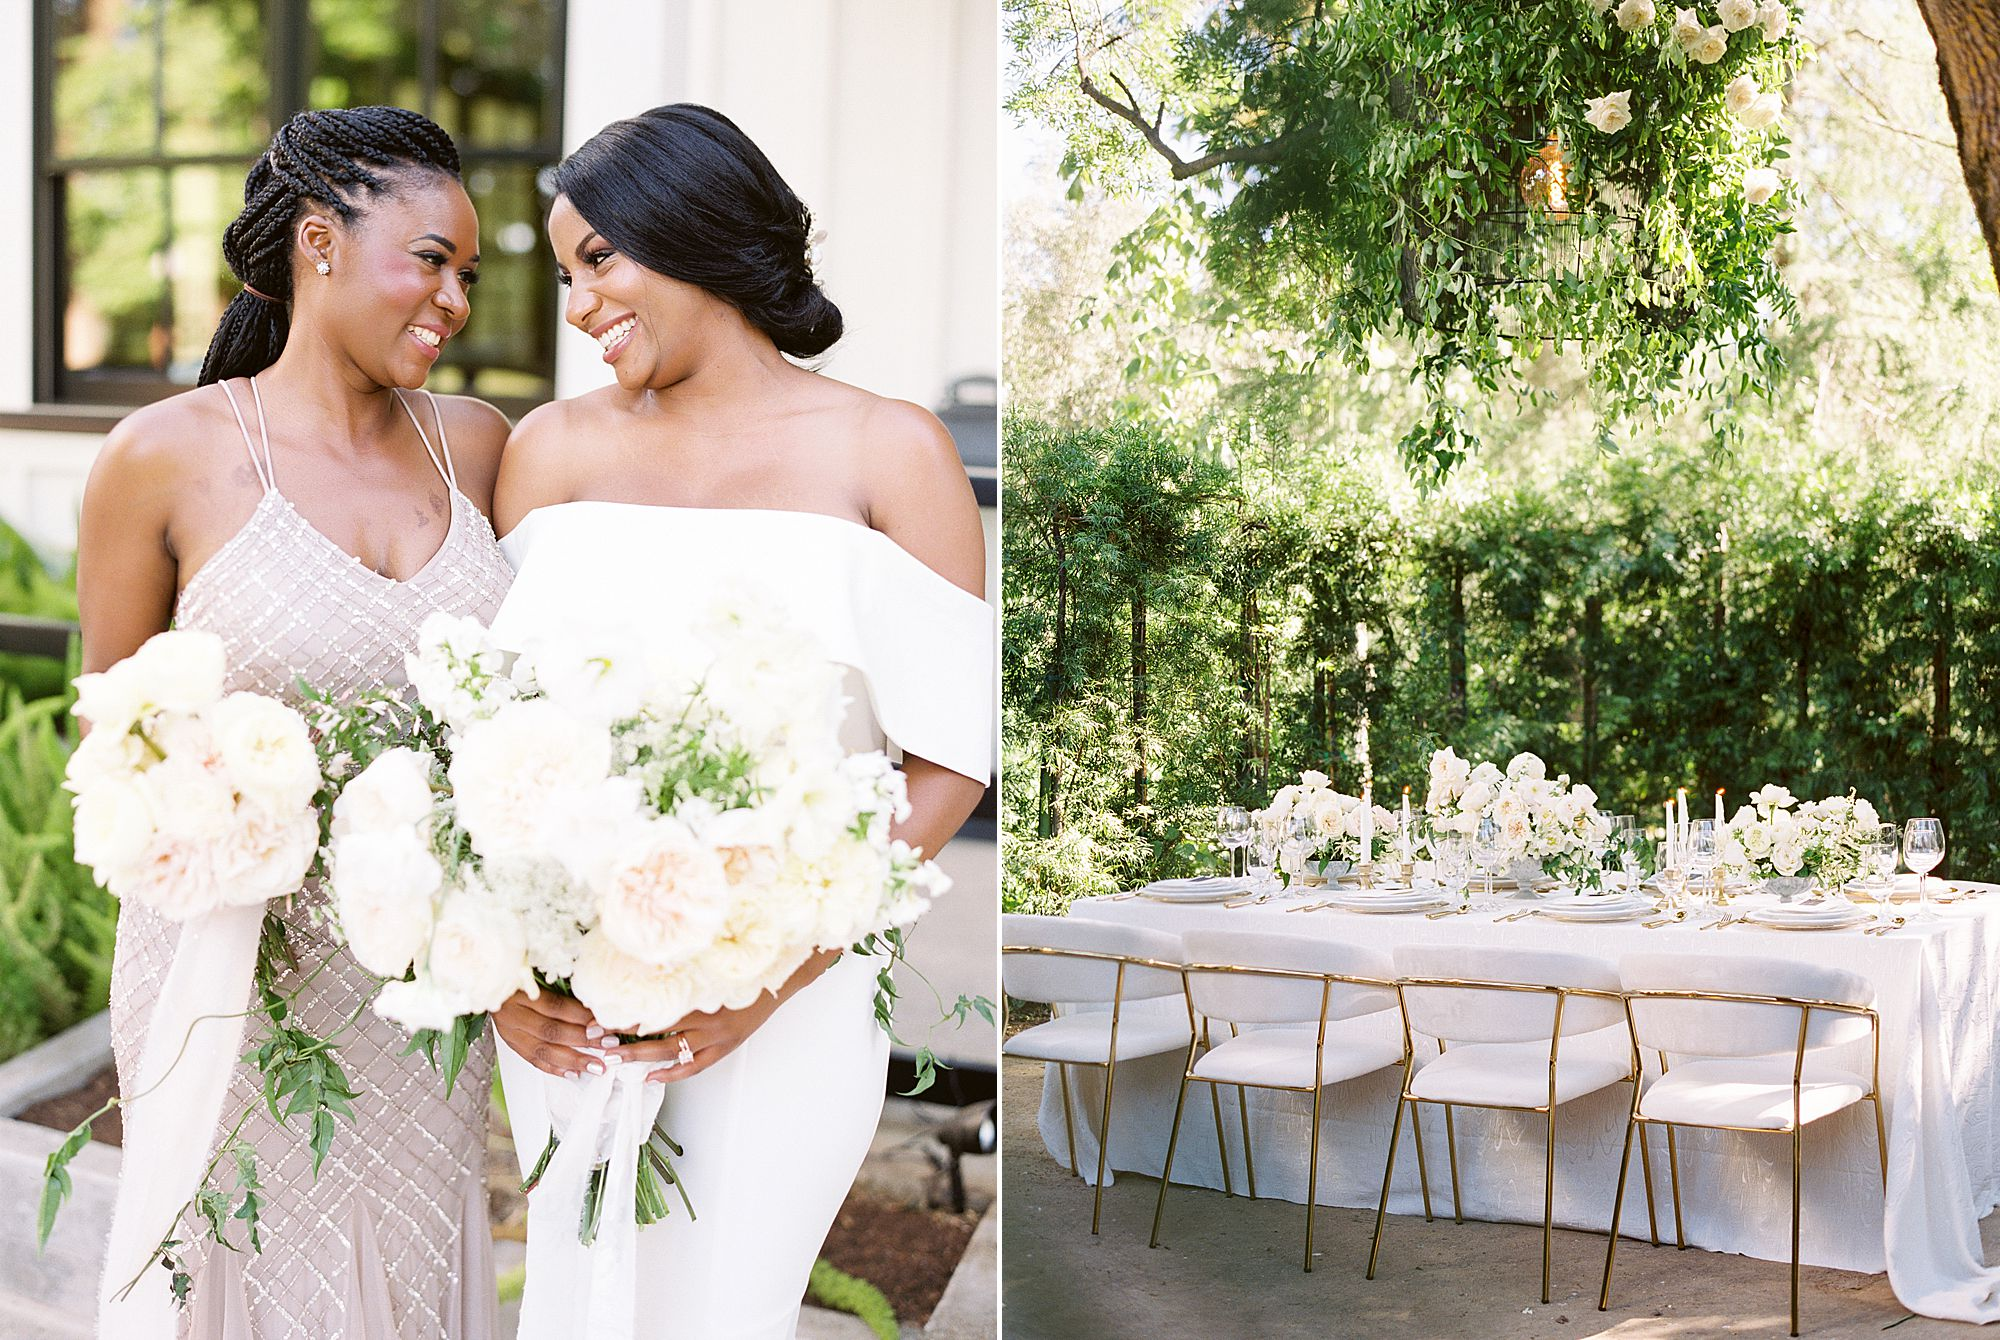 Park Winters Micro-Wedding Inspiration on Style Me Pretty - Stephanie Teague Events - Ashley Baumgartner - Park Winters Wedding - Black Tie Wedding - Micro-Wedding Sacramento Photographer_0067.jpg